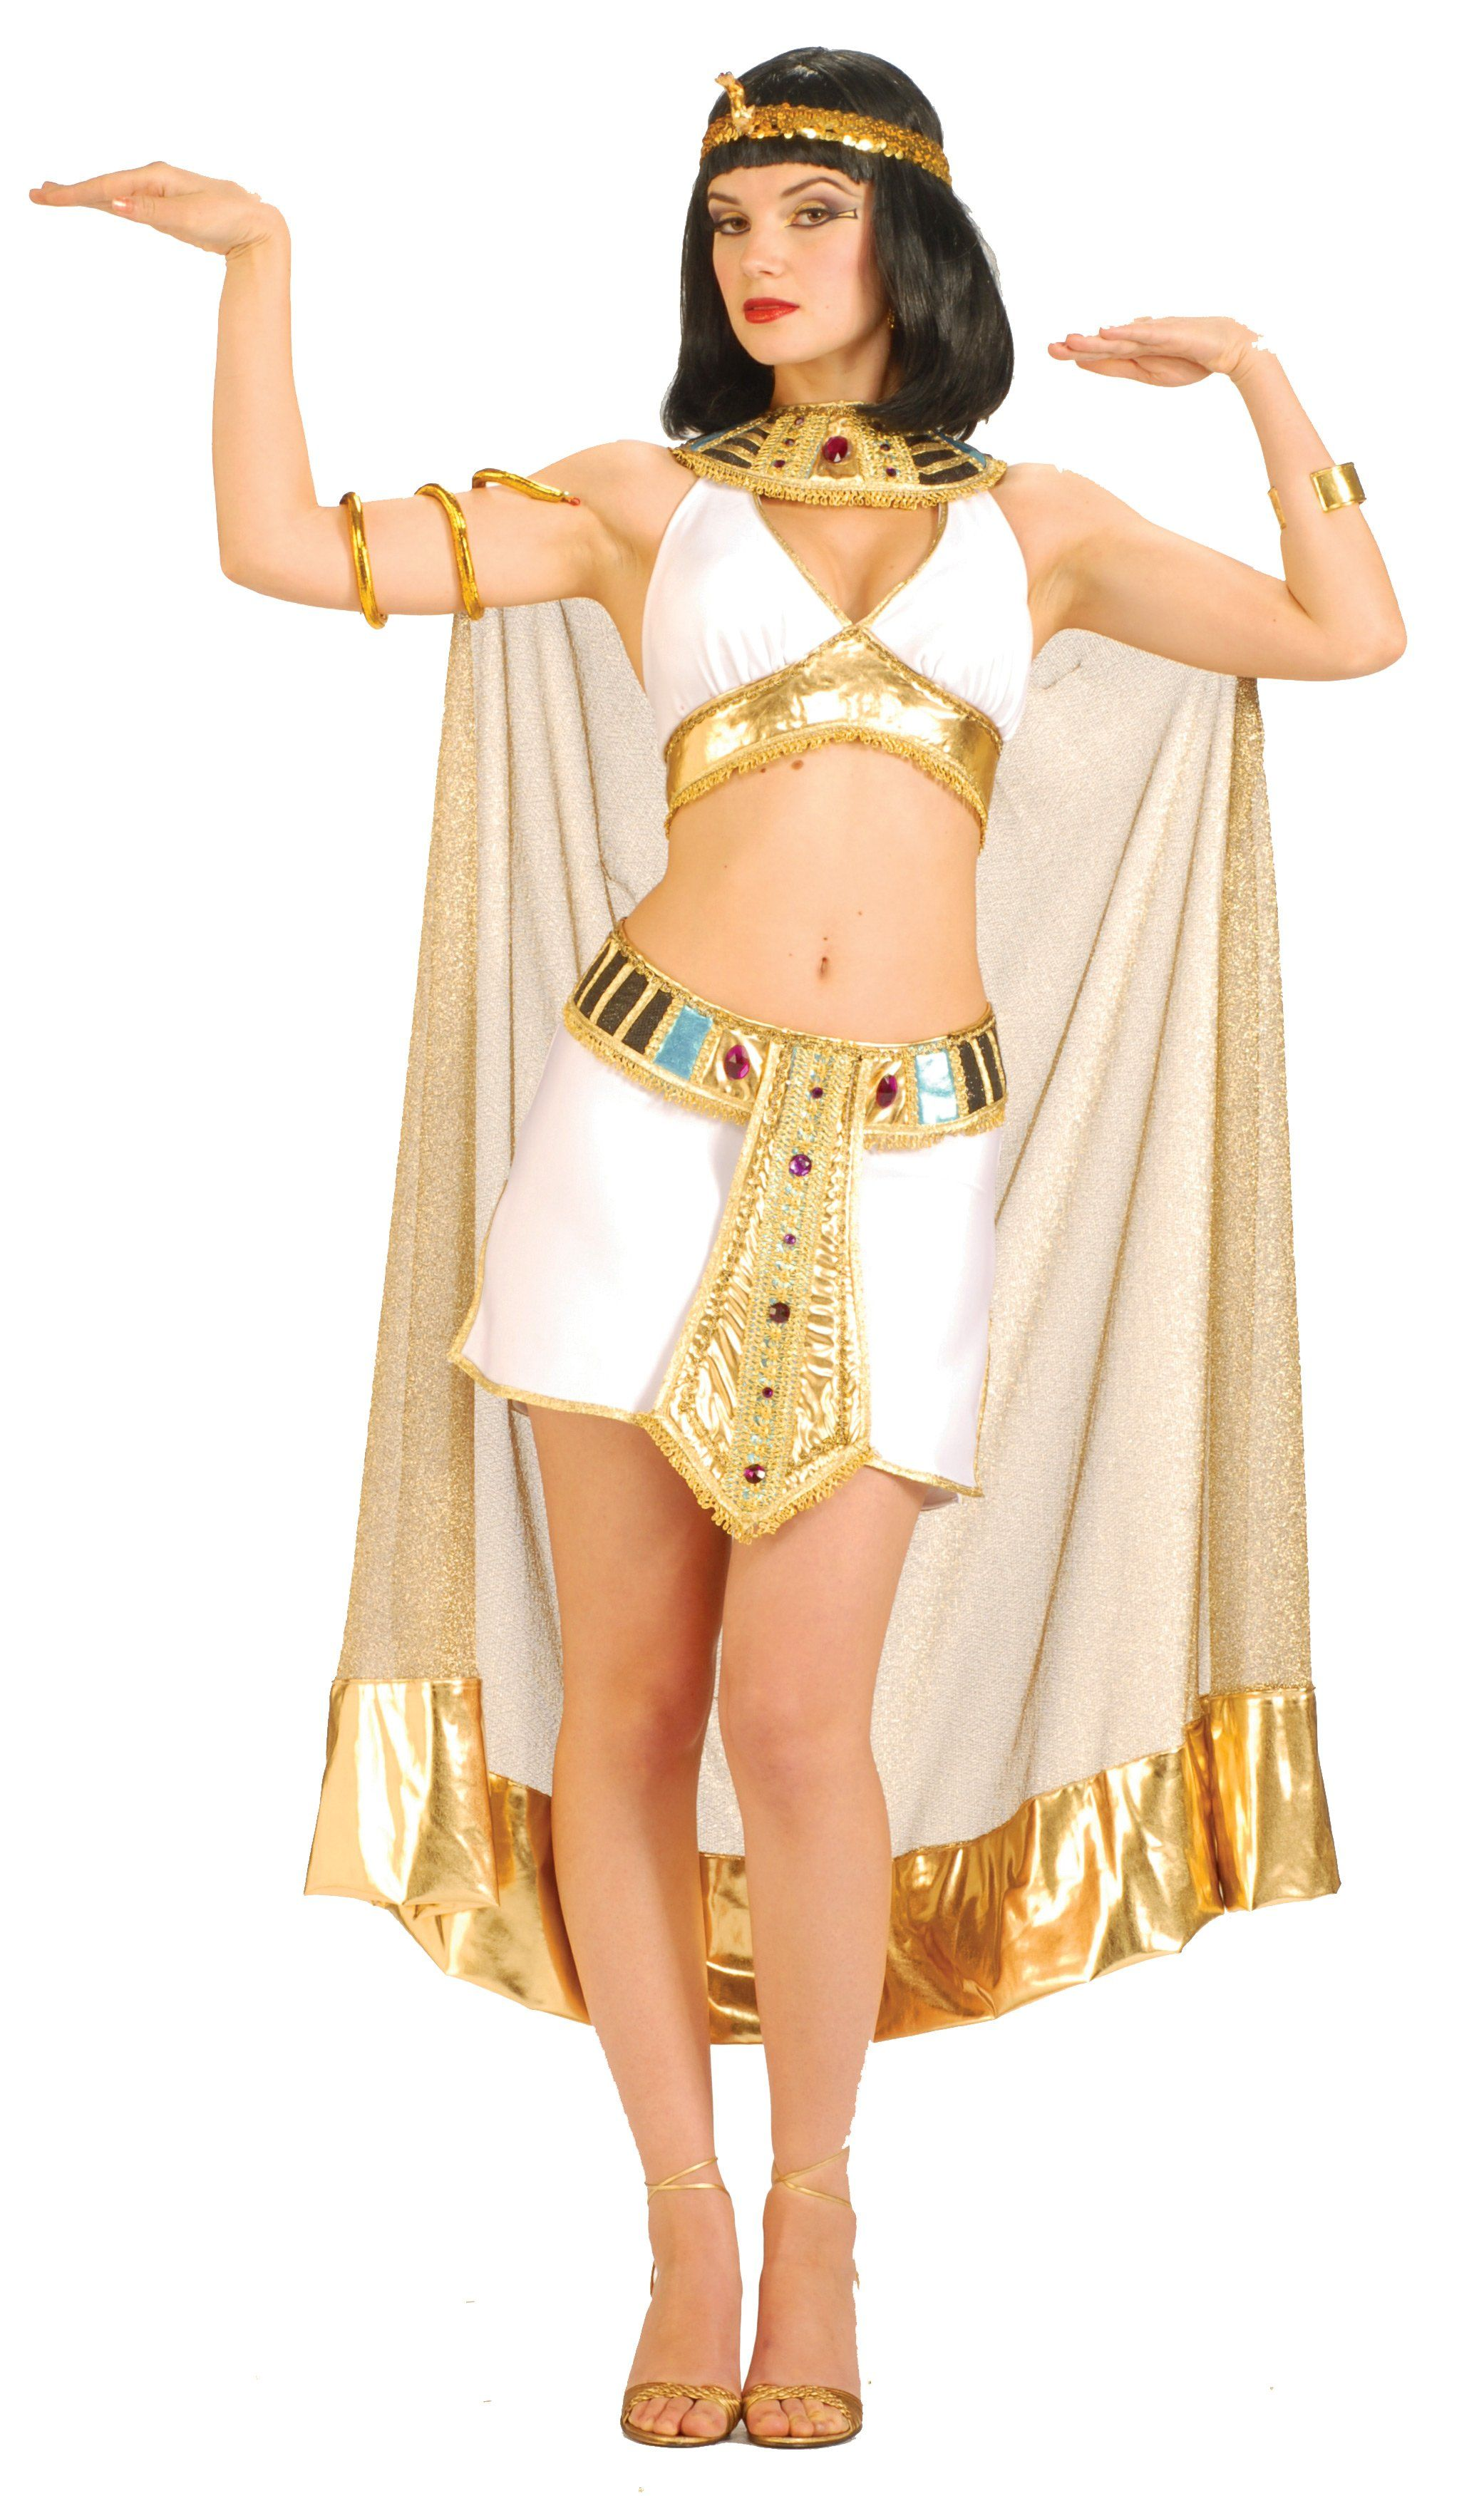 cleopatra-cosplayer-with-a-gorgeous-body